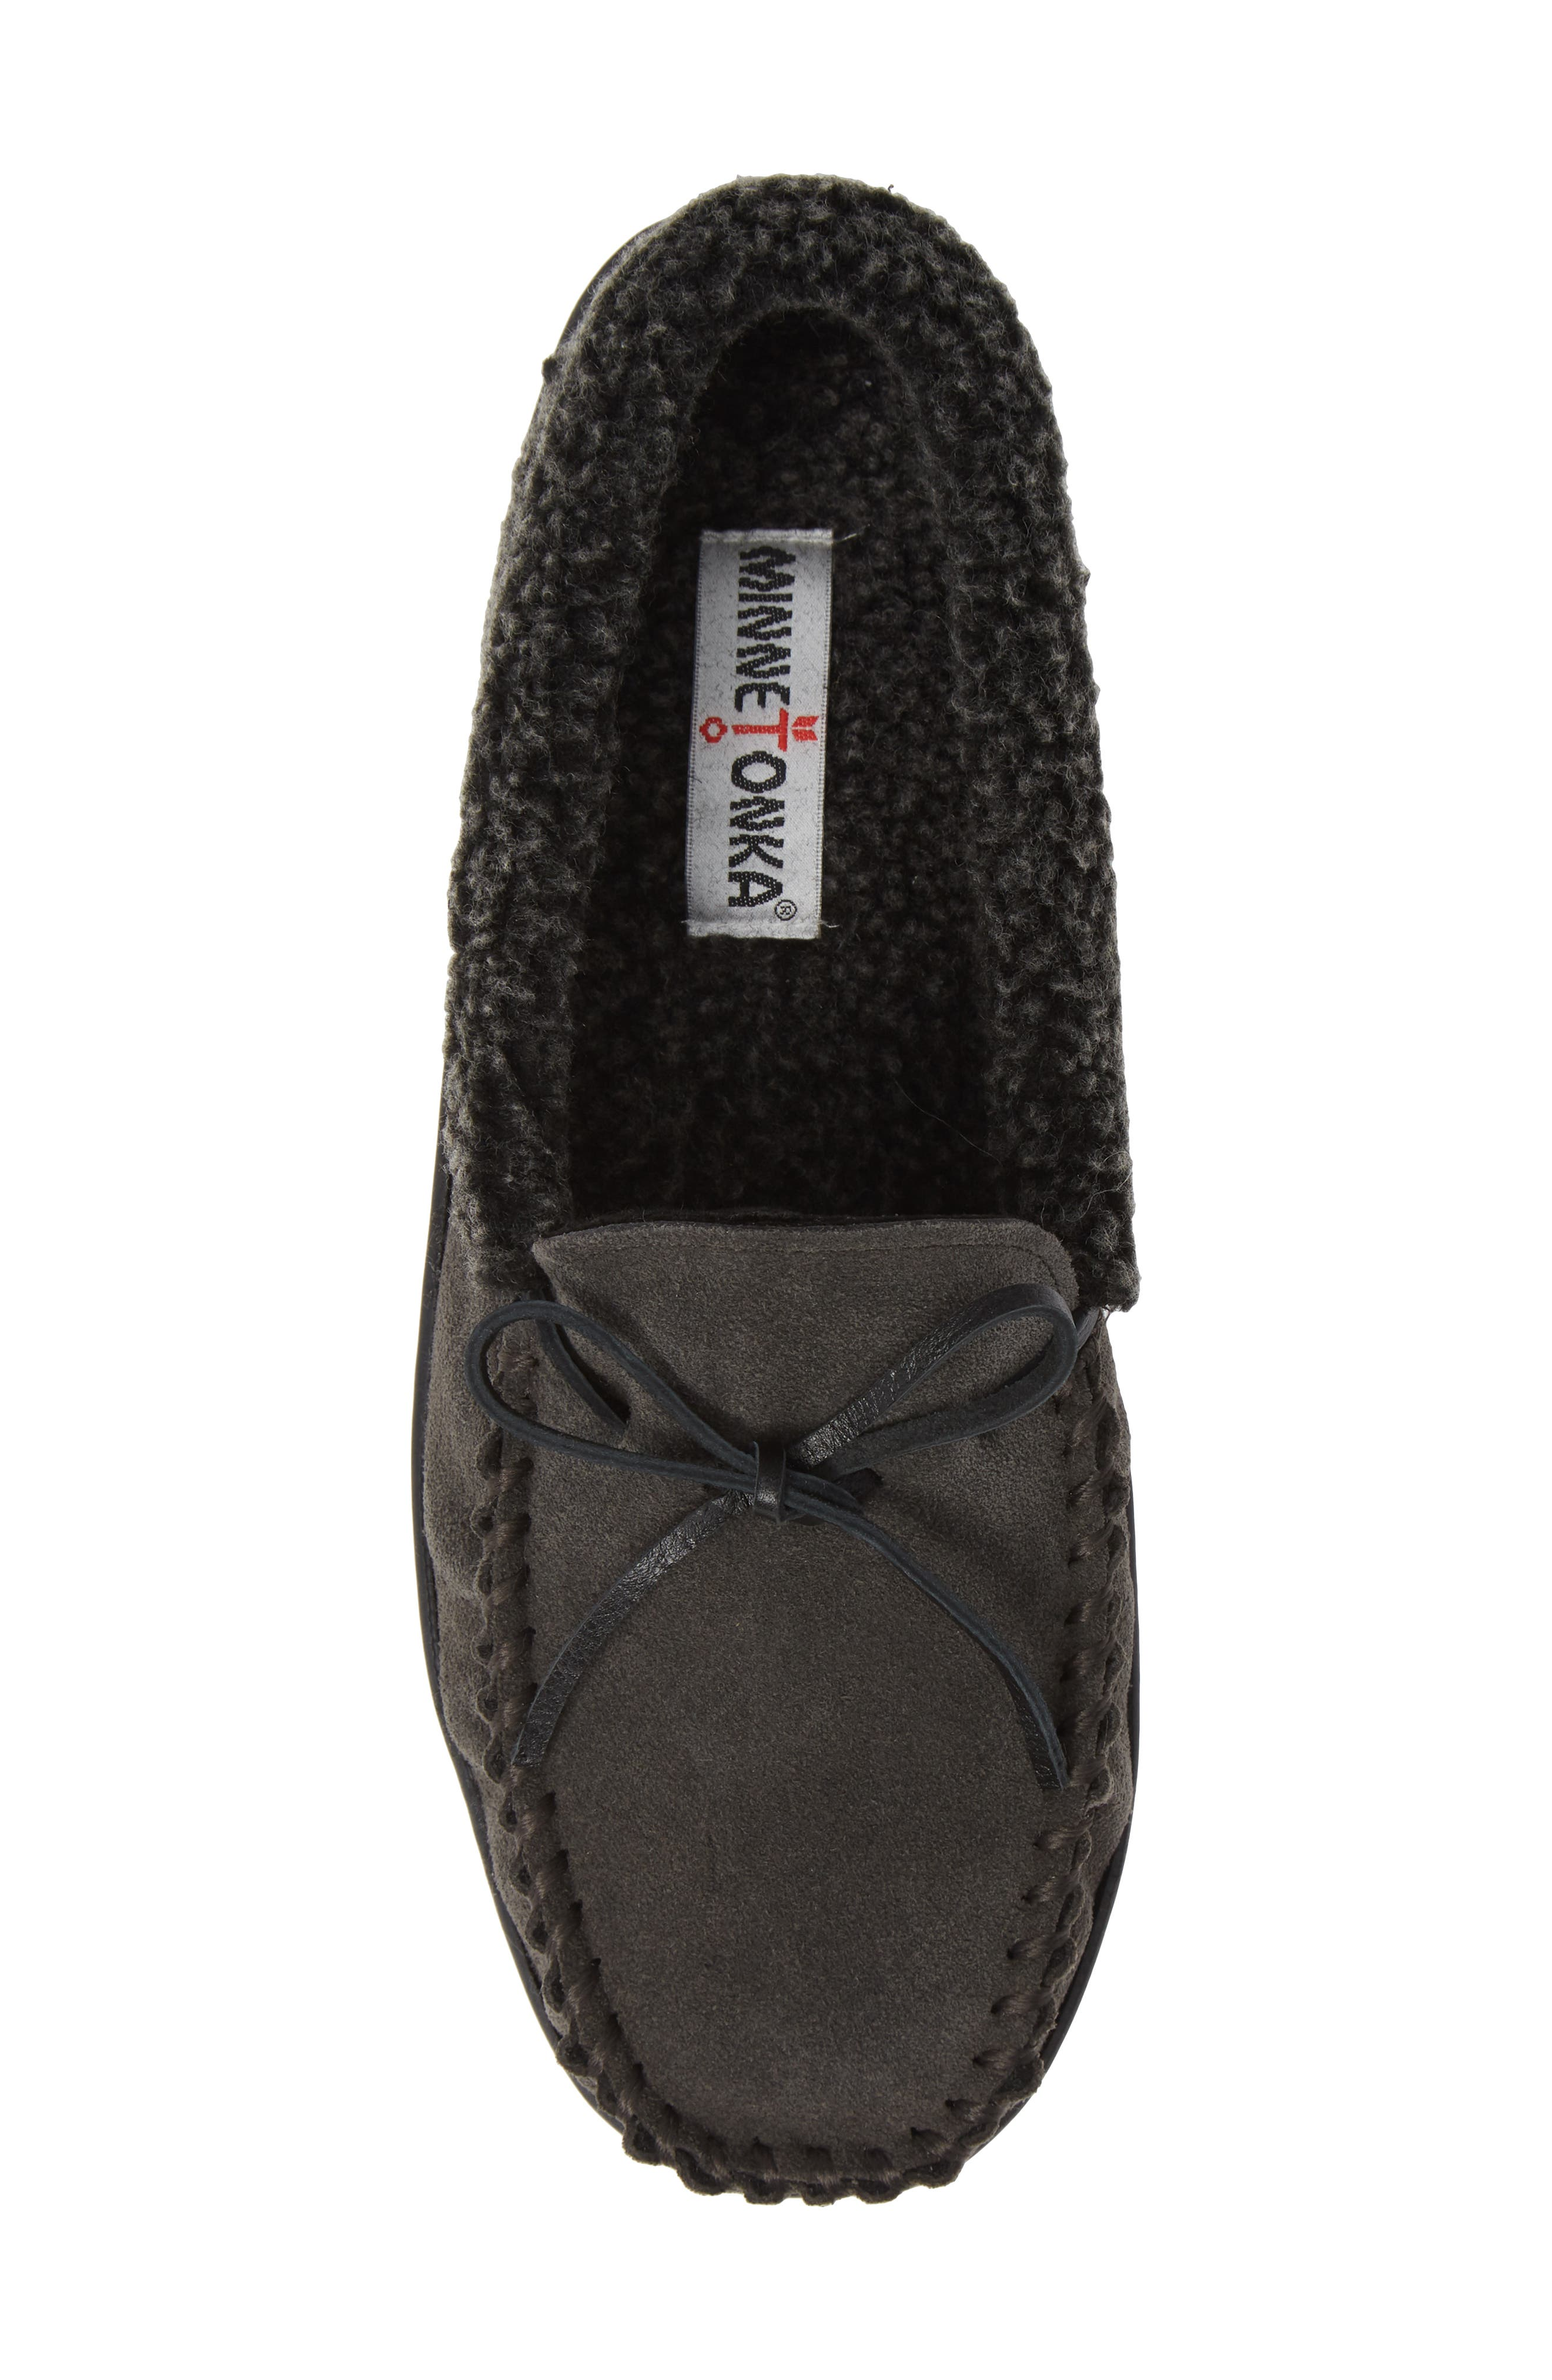 Allen Moccasin Slipper,                             Alternate thumbnail 5, color,                             CHARCOAL SUEDE